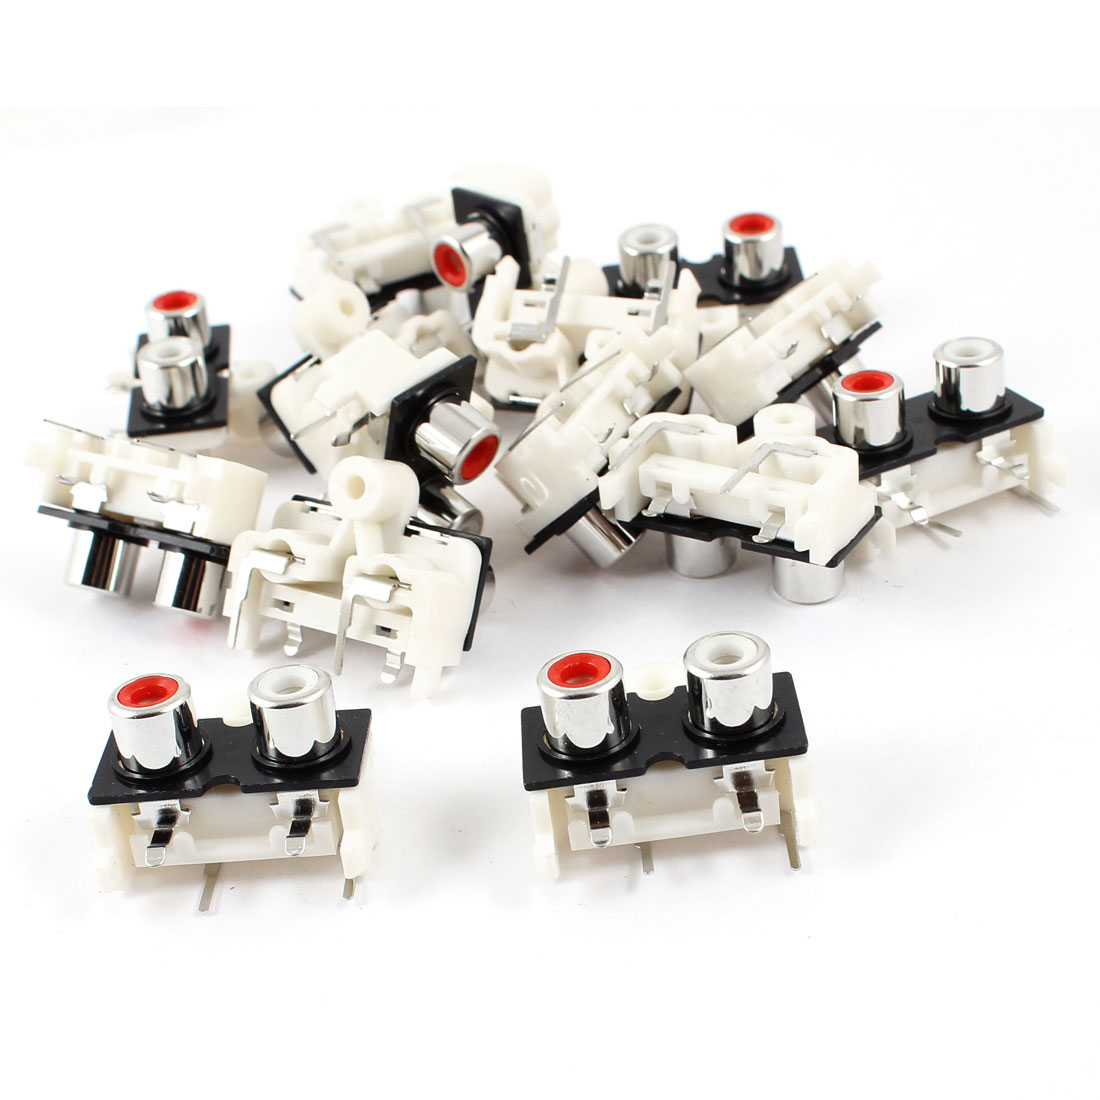 15 Pcs 2 RCA PCB Mount Female Outlet Jack Connector Socket White Red